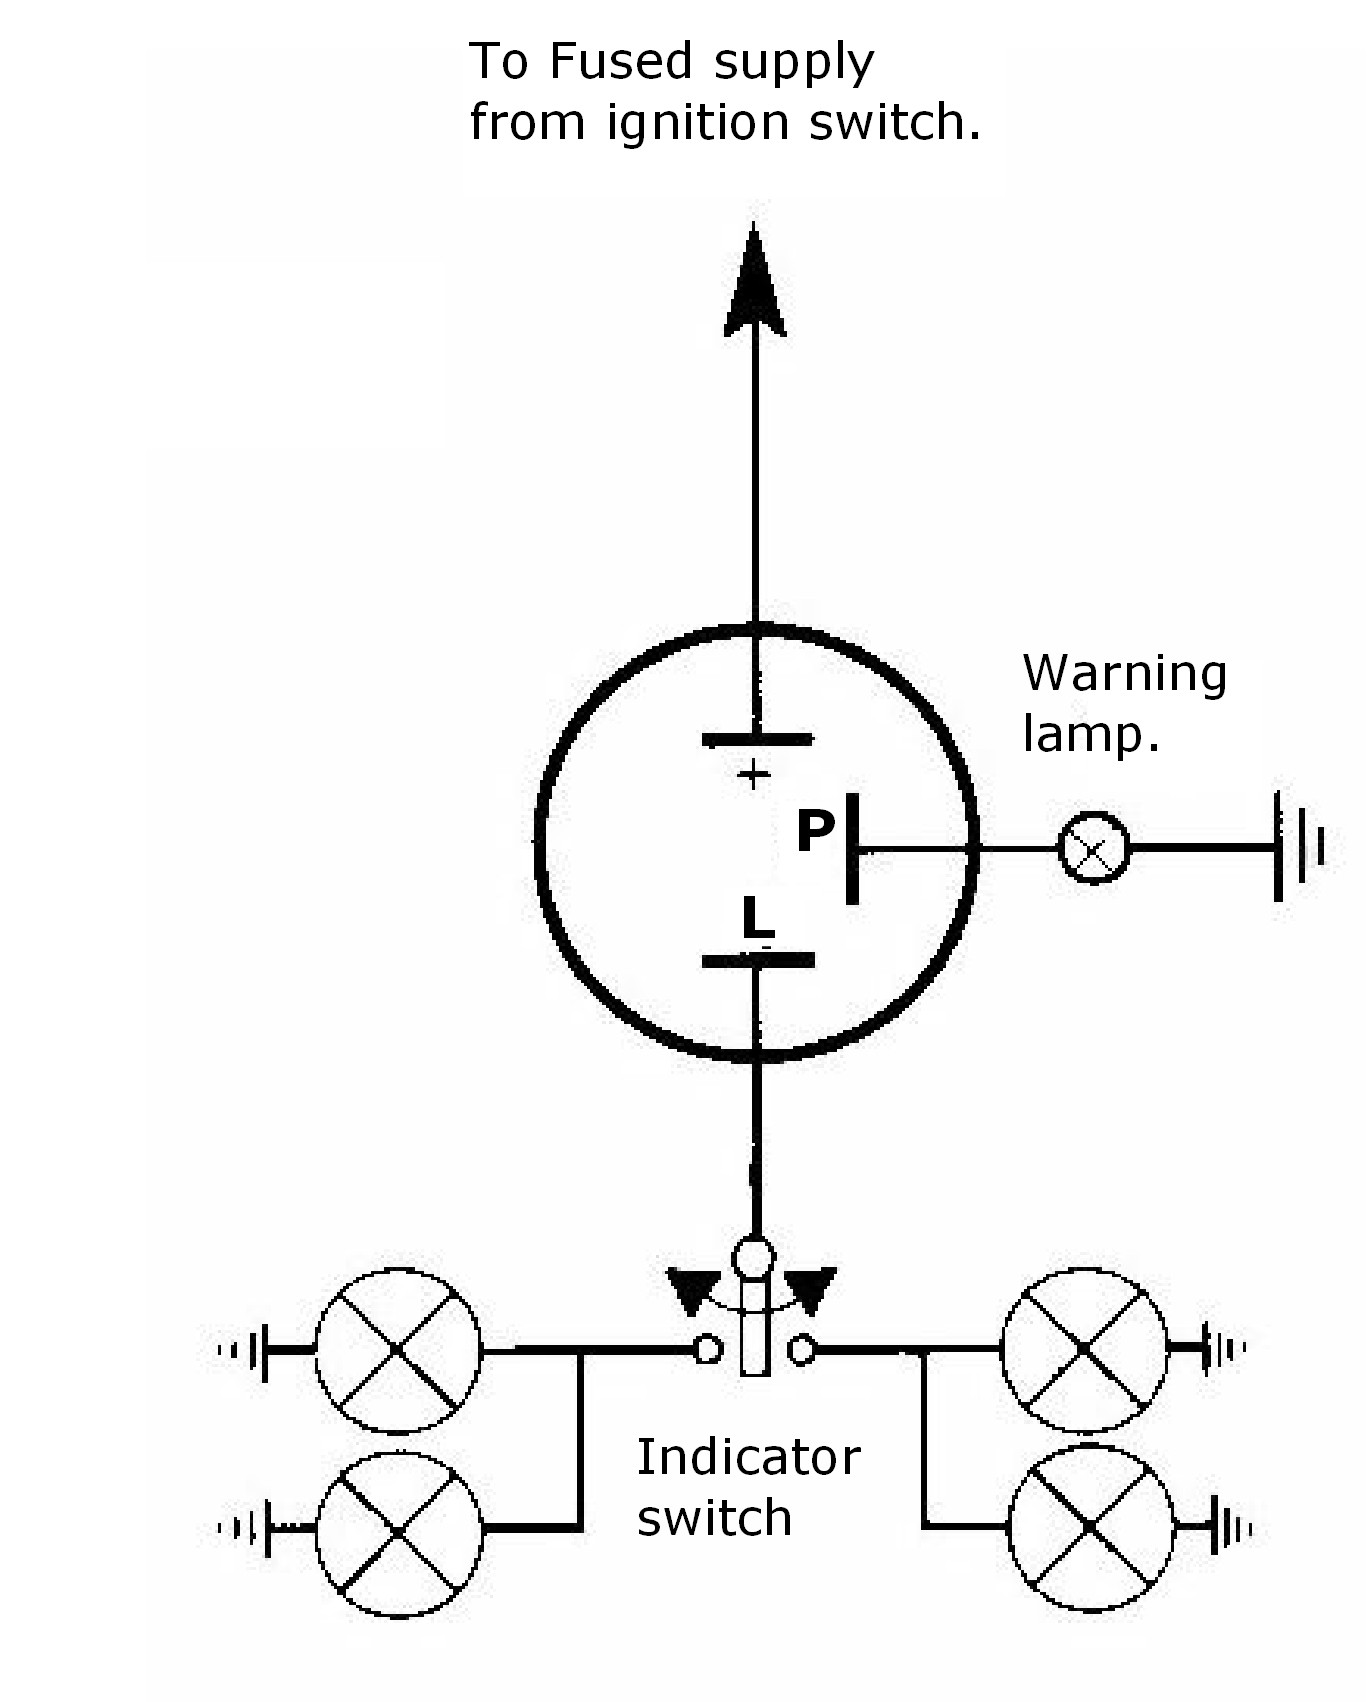 3 Prong Flasher Wiring Diagram February 2015 – the Racing Rhino Of 3 Prong Flasher Wiring Diagram